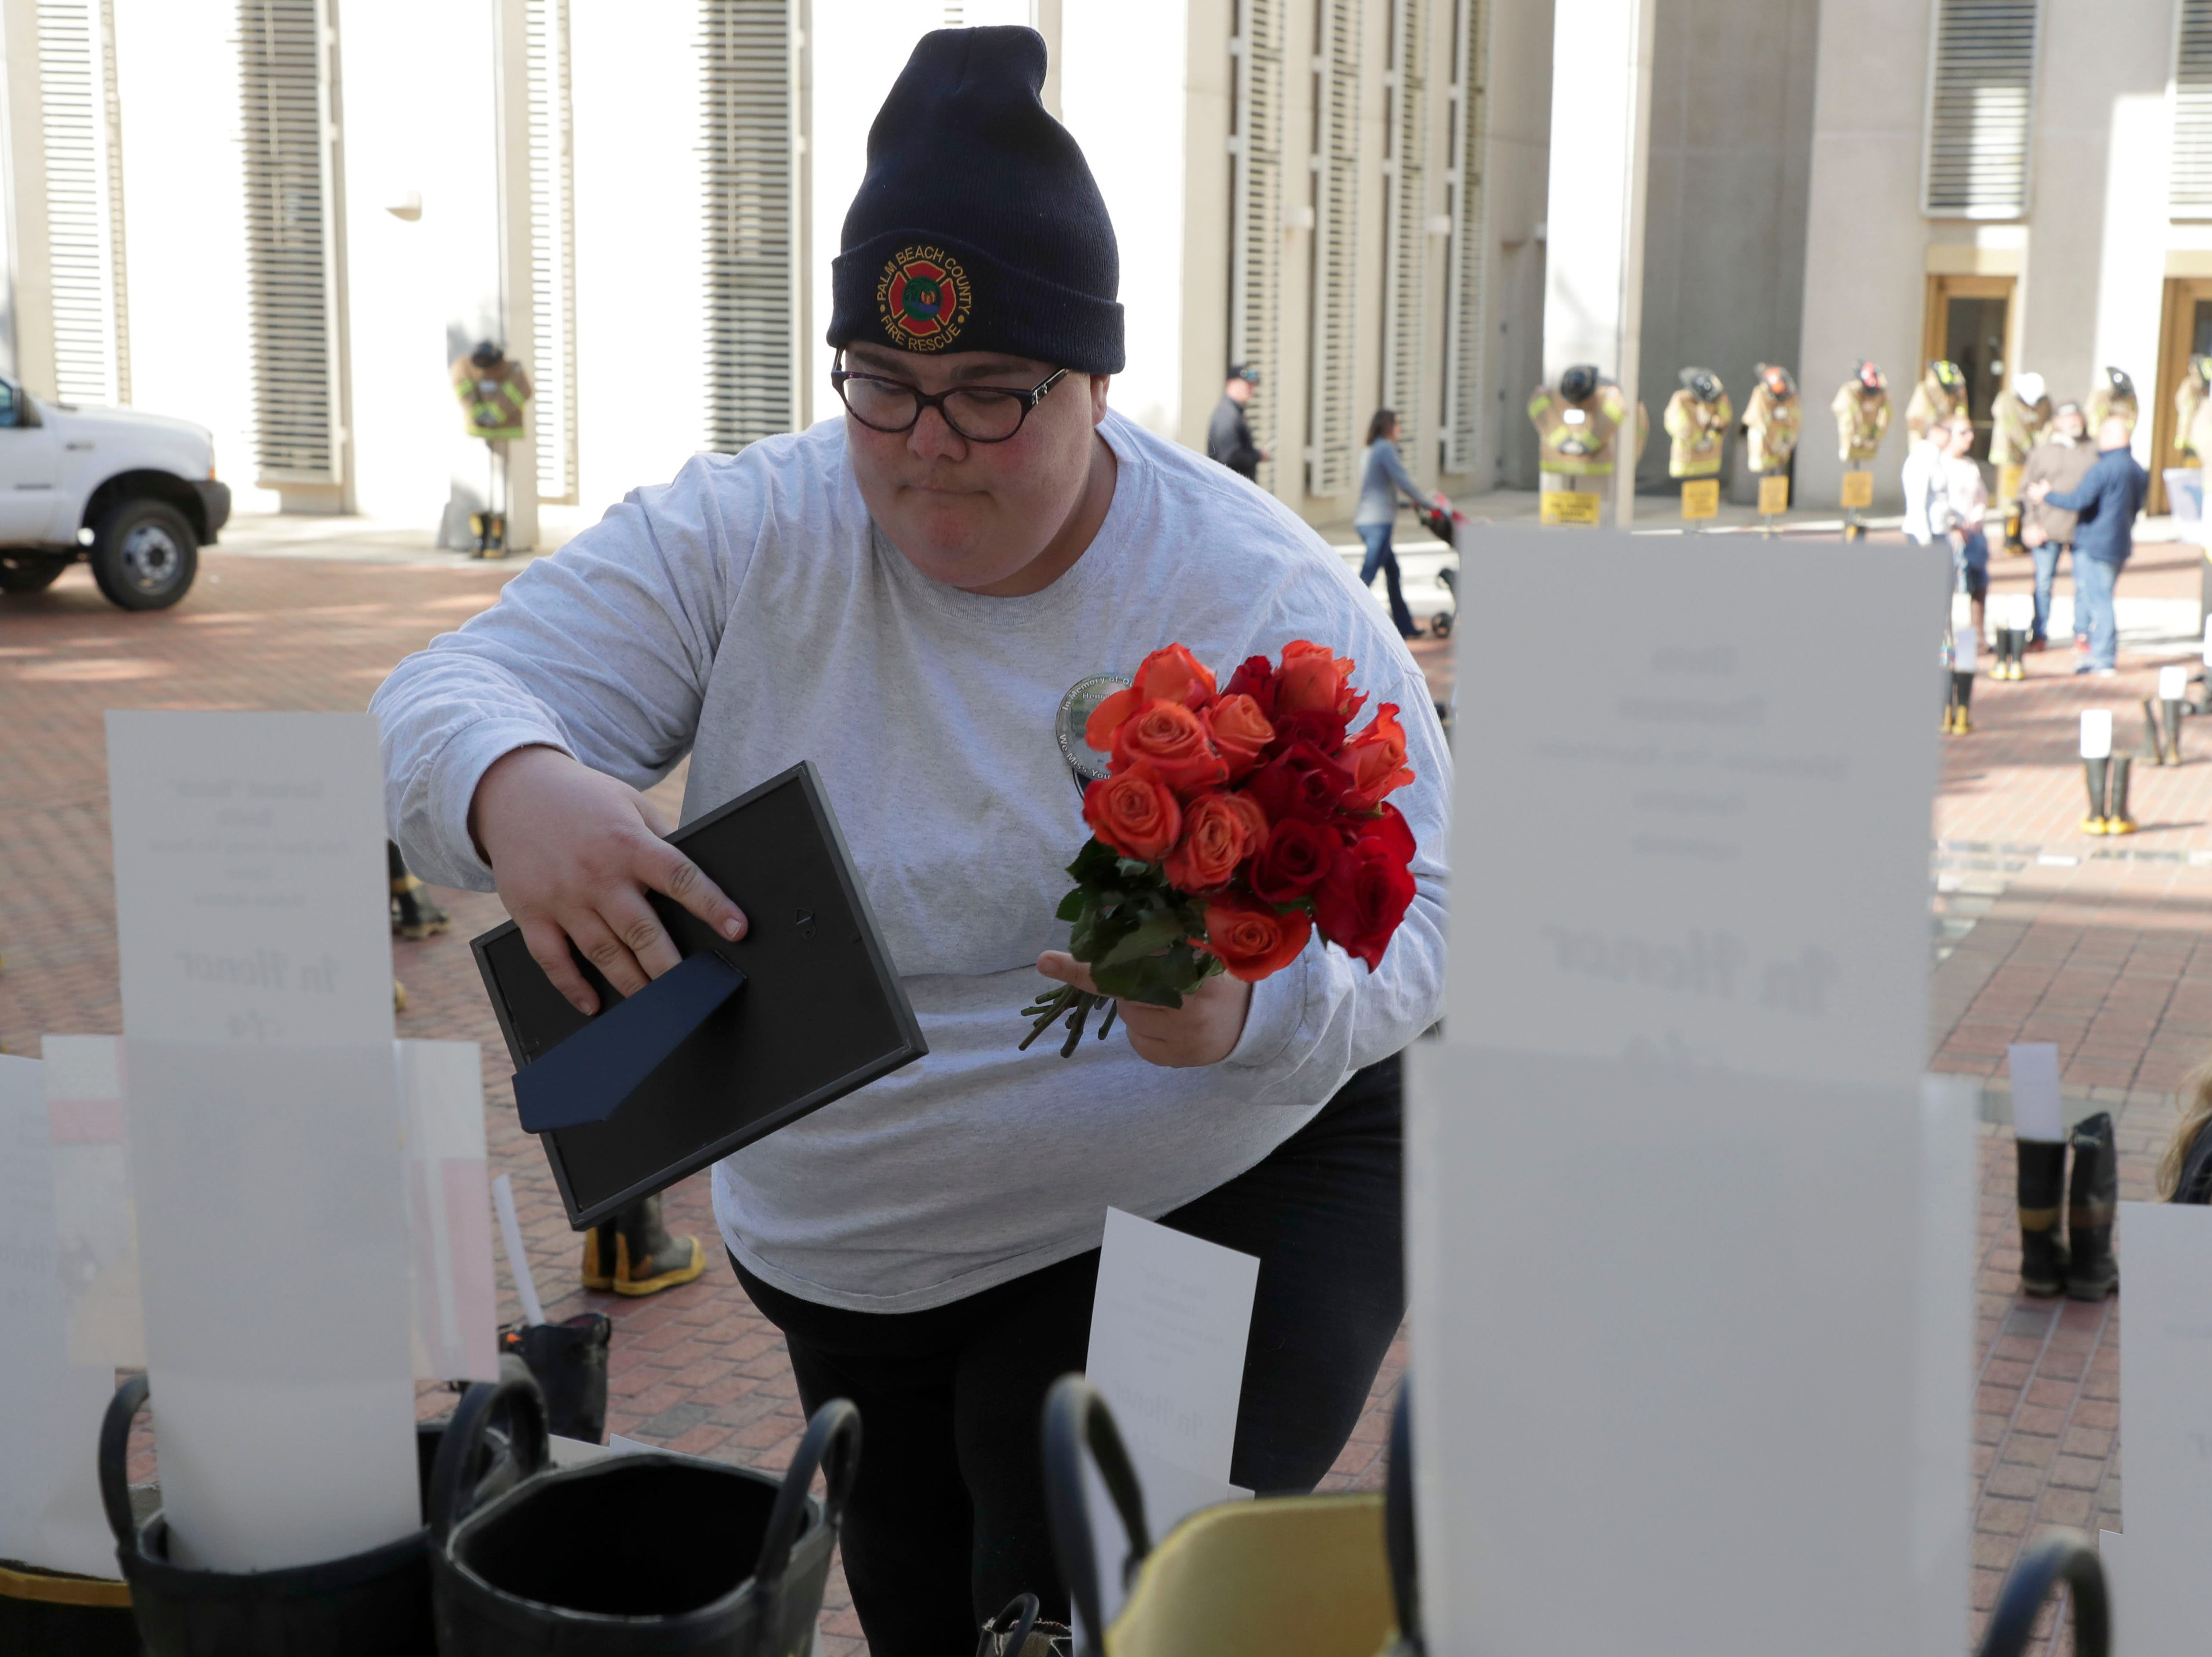 Jaclynn Cusell, a firefighter with Palm Beach County Fire Department, places a framed photo and flowers with a pair of boots honoring her father, Henry Cusell who battled Non-Hodgkins lymphoma. Firefighters and their families from around the state create a display at the Capitol of 500 pairs of boots in honor of firefighters who lost their battle or are battling with cancer caused from smoke inhalation and carcinogens Thursday, March 7, 2019. The state of Florida is one of five states in the country that does not have a bill acknowledging cancer is a job-related illness.